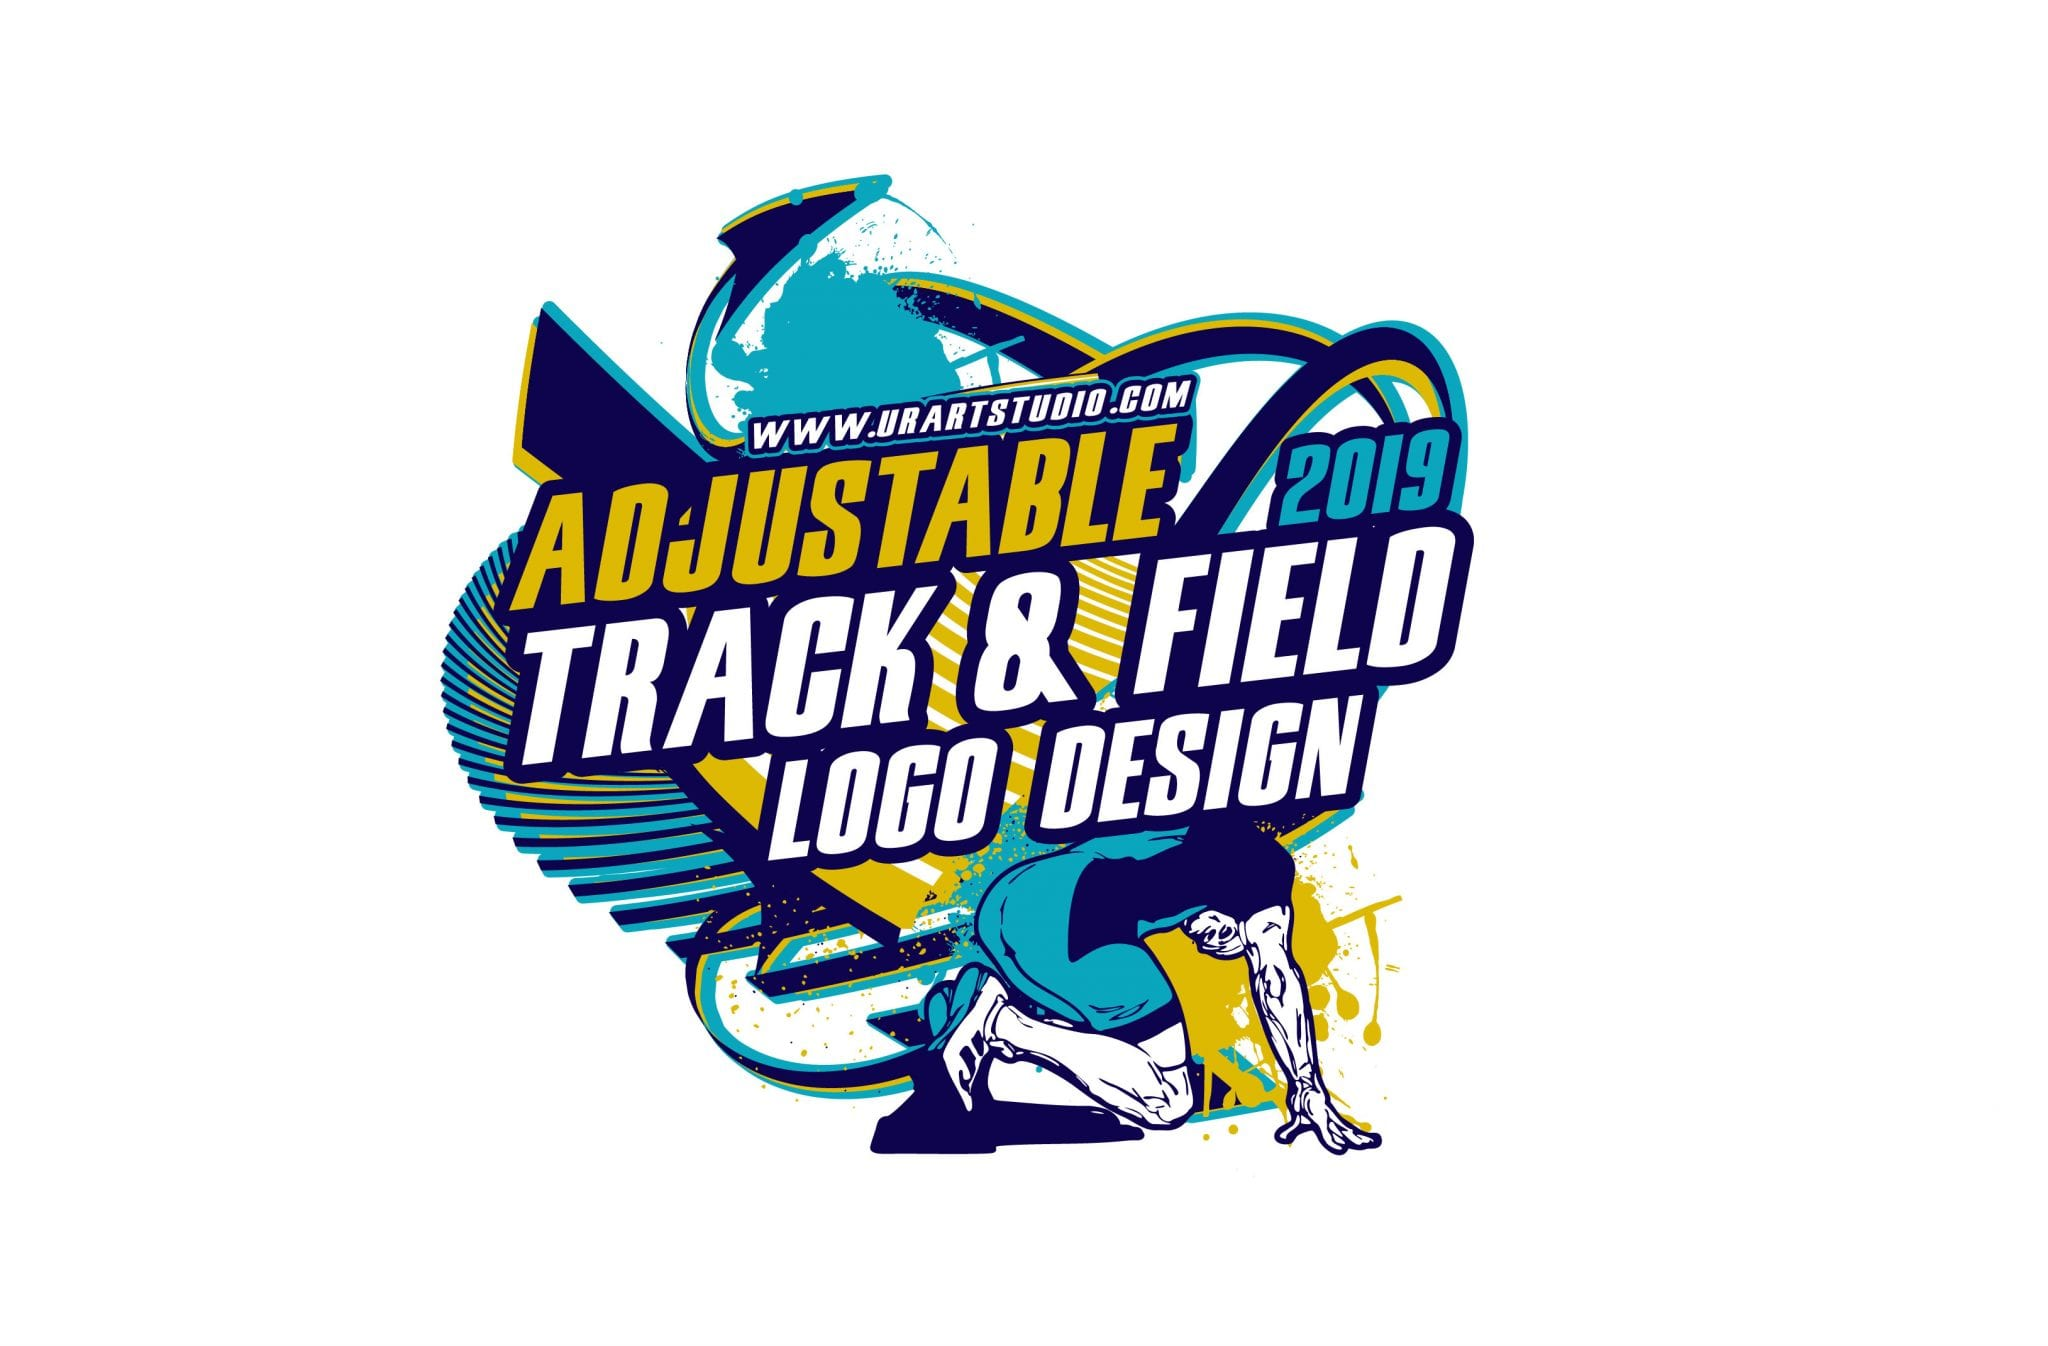 Track and field vector logo design for print ai eps pdf psd 504 urartstudio logos paintings art lessons